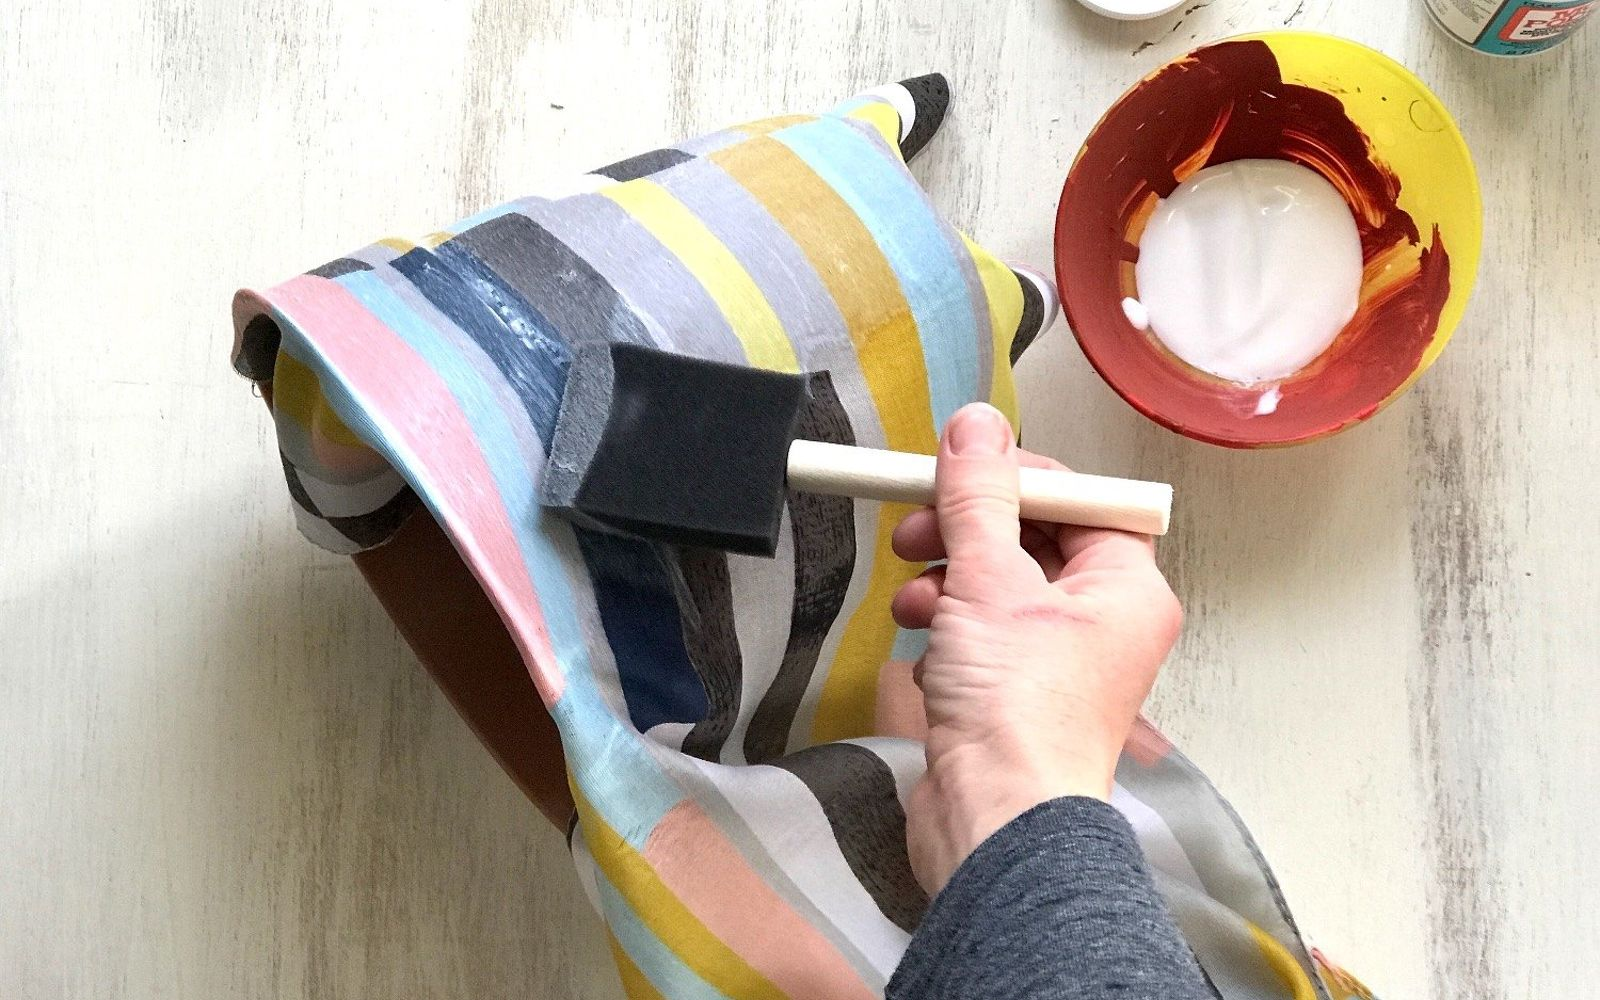 s upcycle your old clothing items for these great ideas, Step 2 Mod Podge scarf onto pot